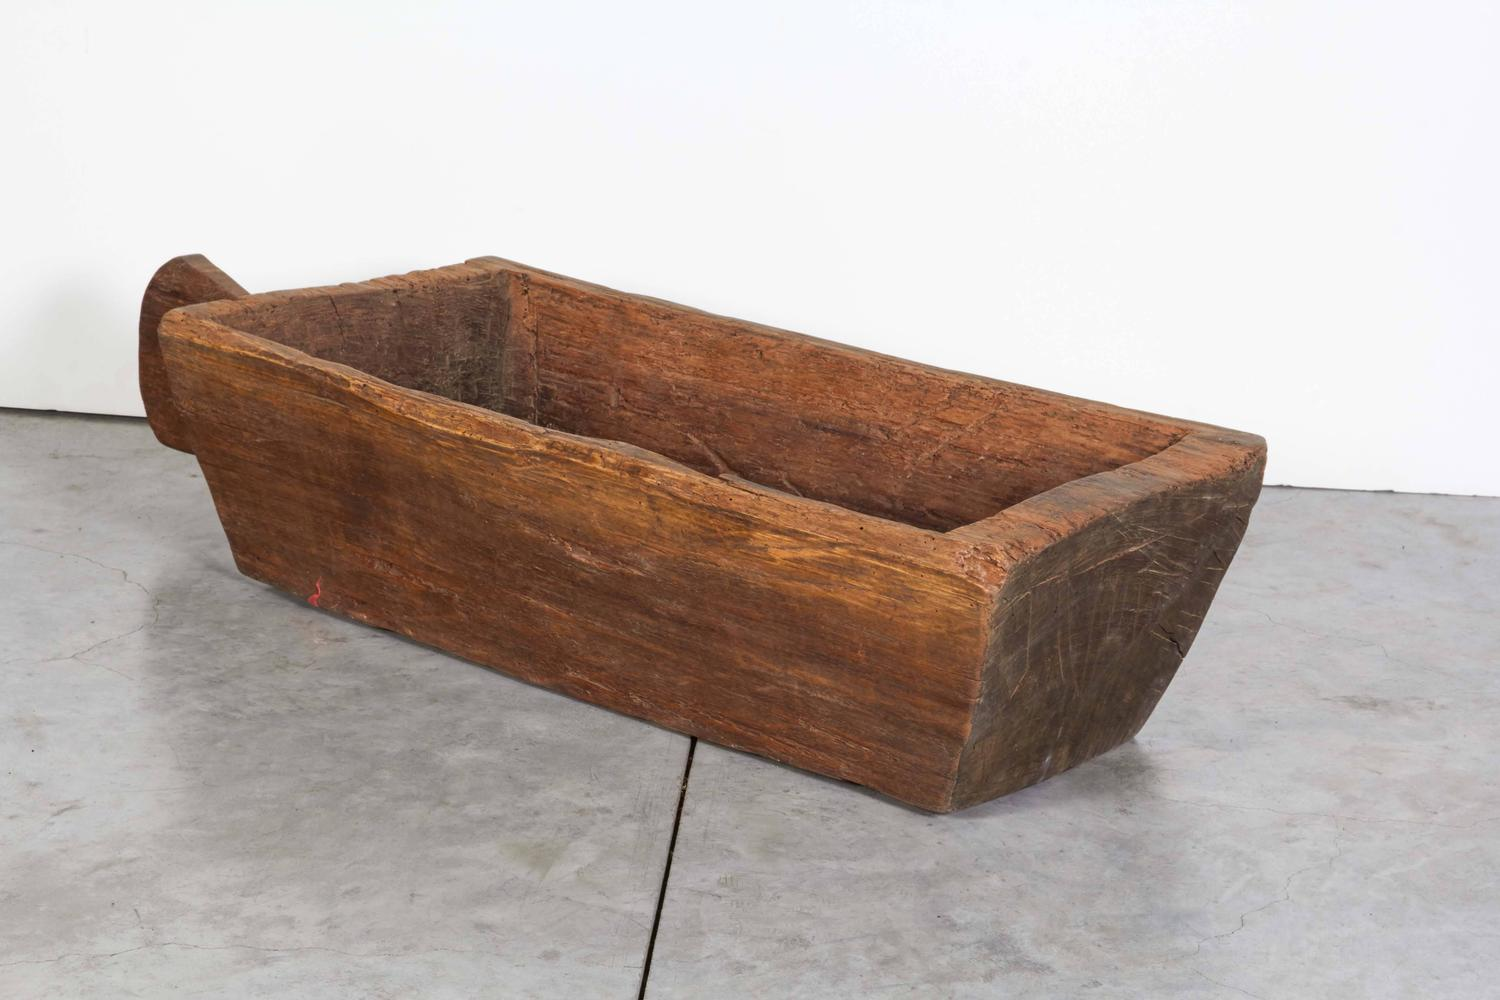 Large Thick Antique Wooden Primitive Tray For Sale At 1stdibs